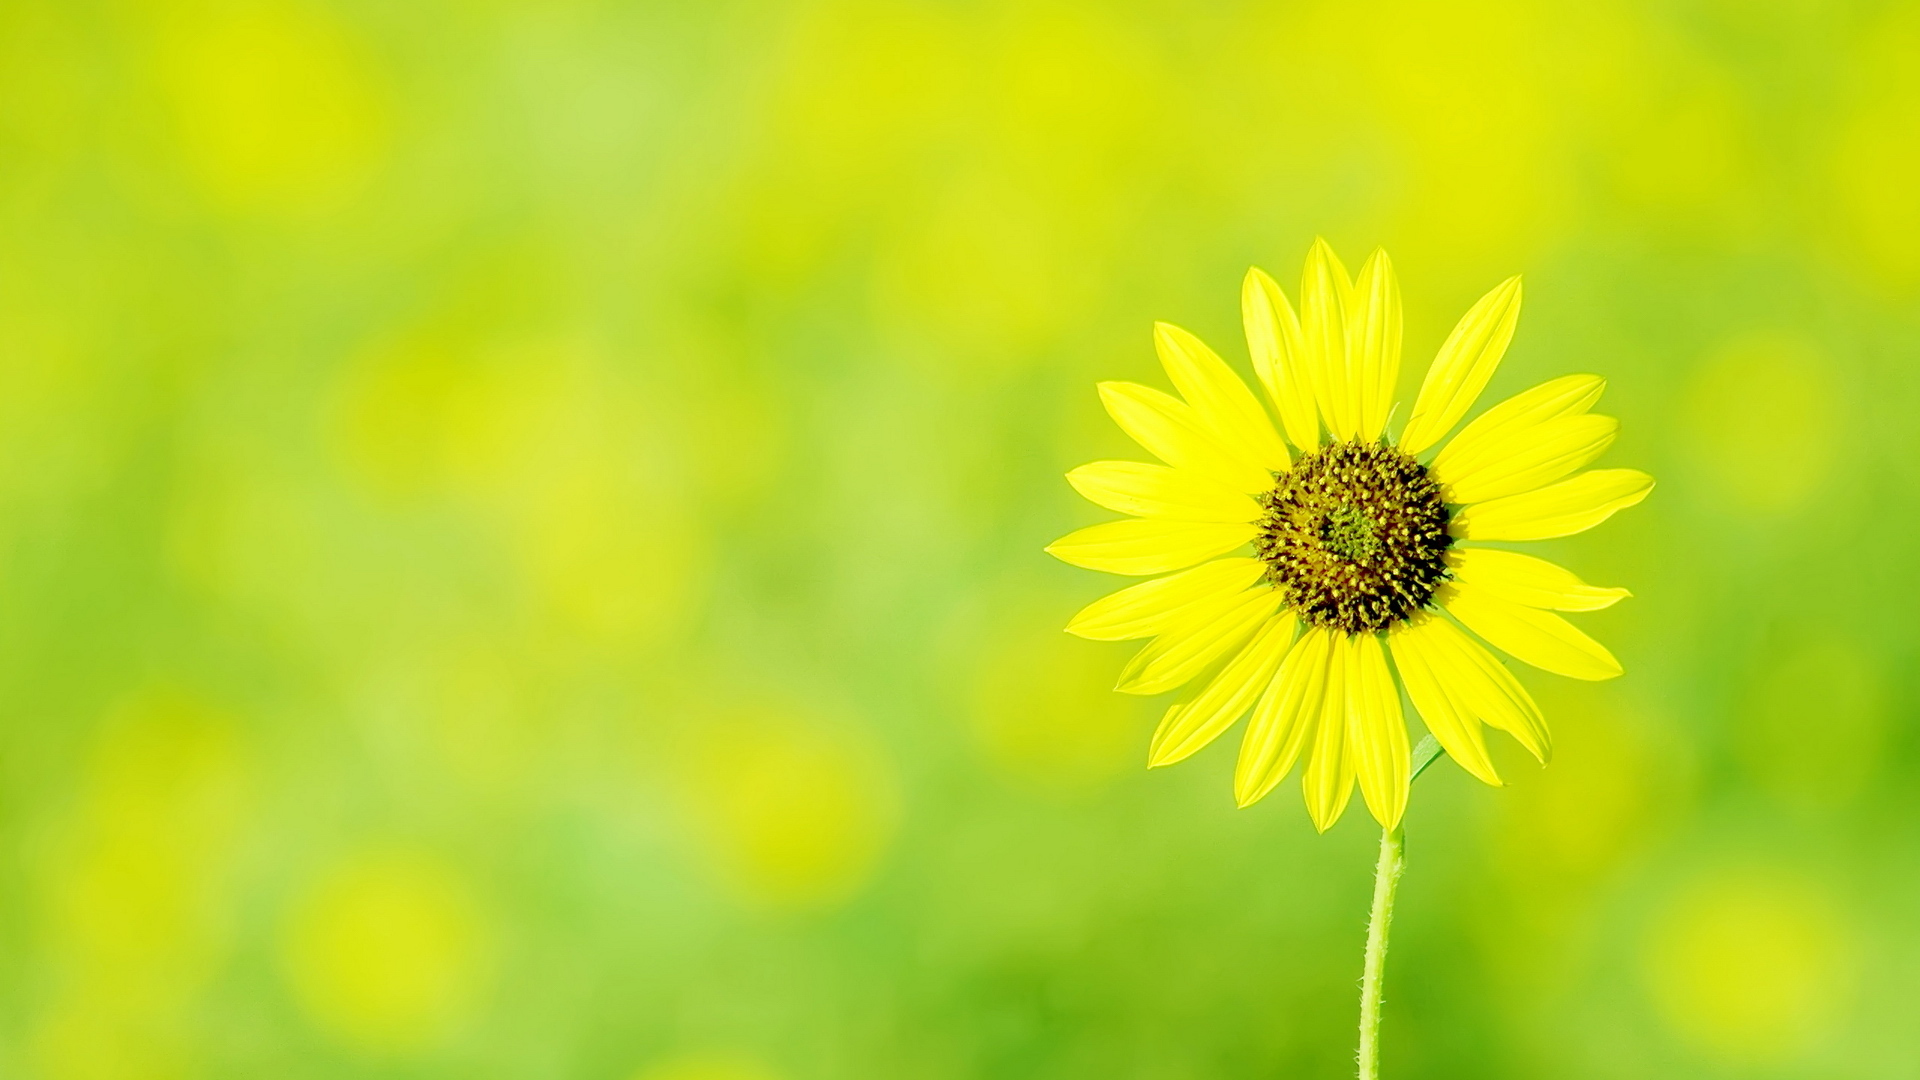 background, wallpapers, chamomile, yellow, green, wallpaper, flowers Wallpaper